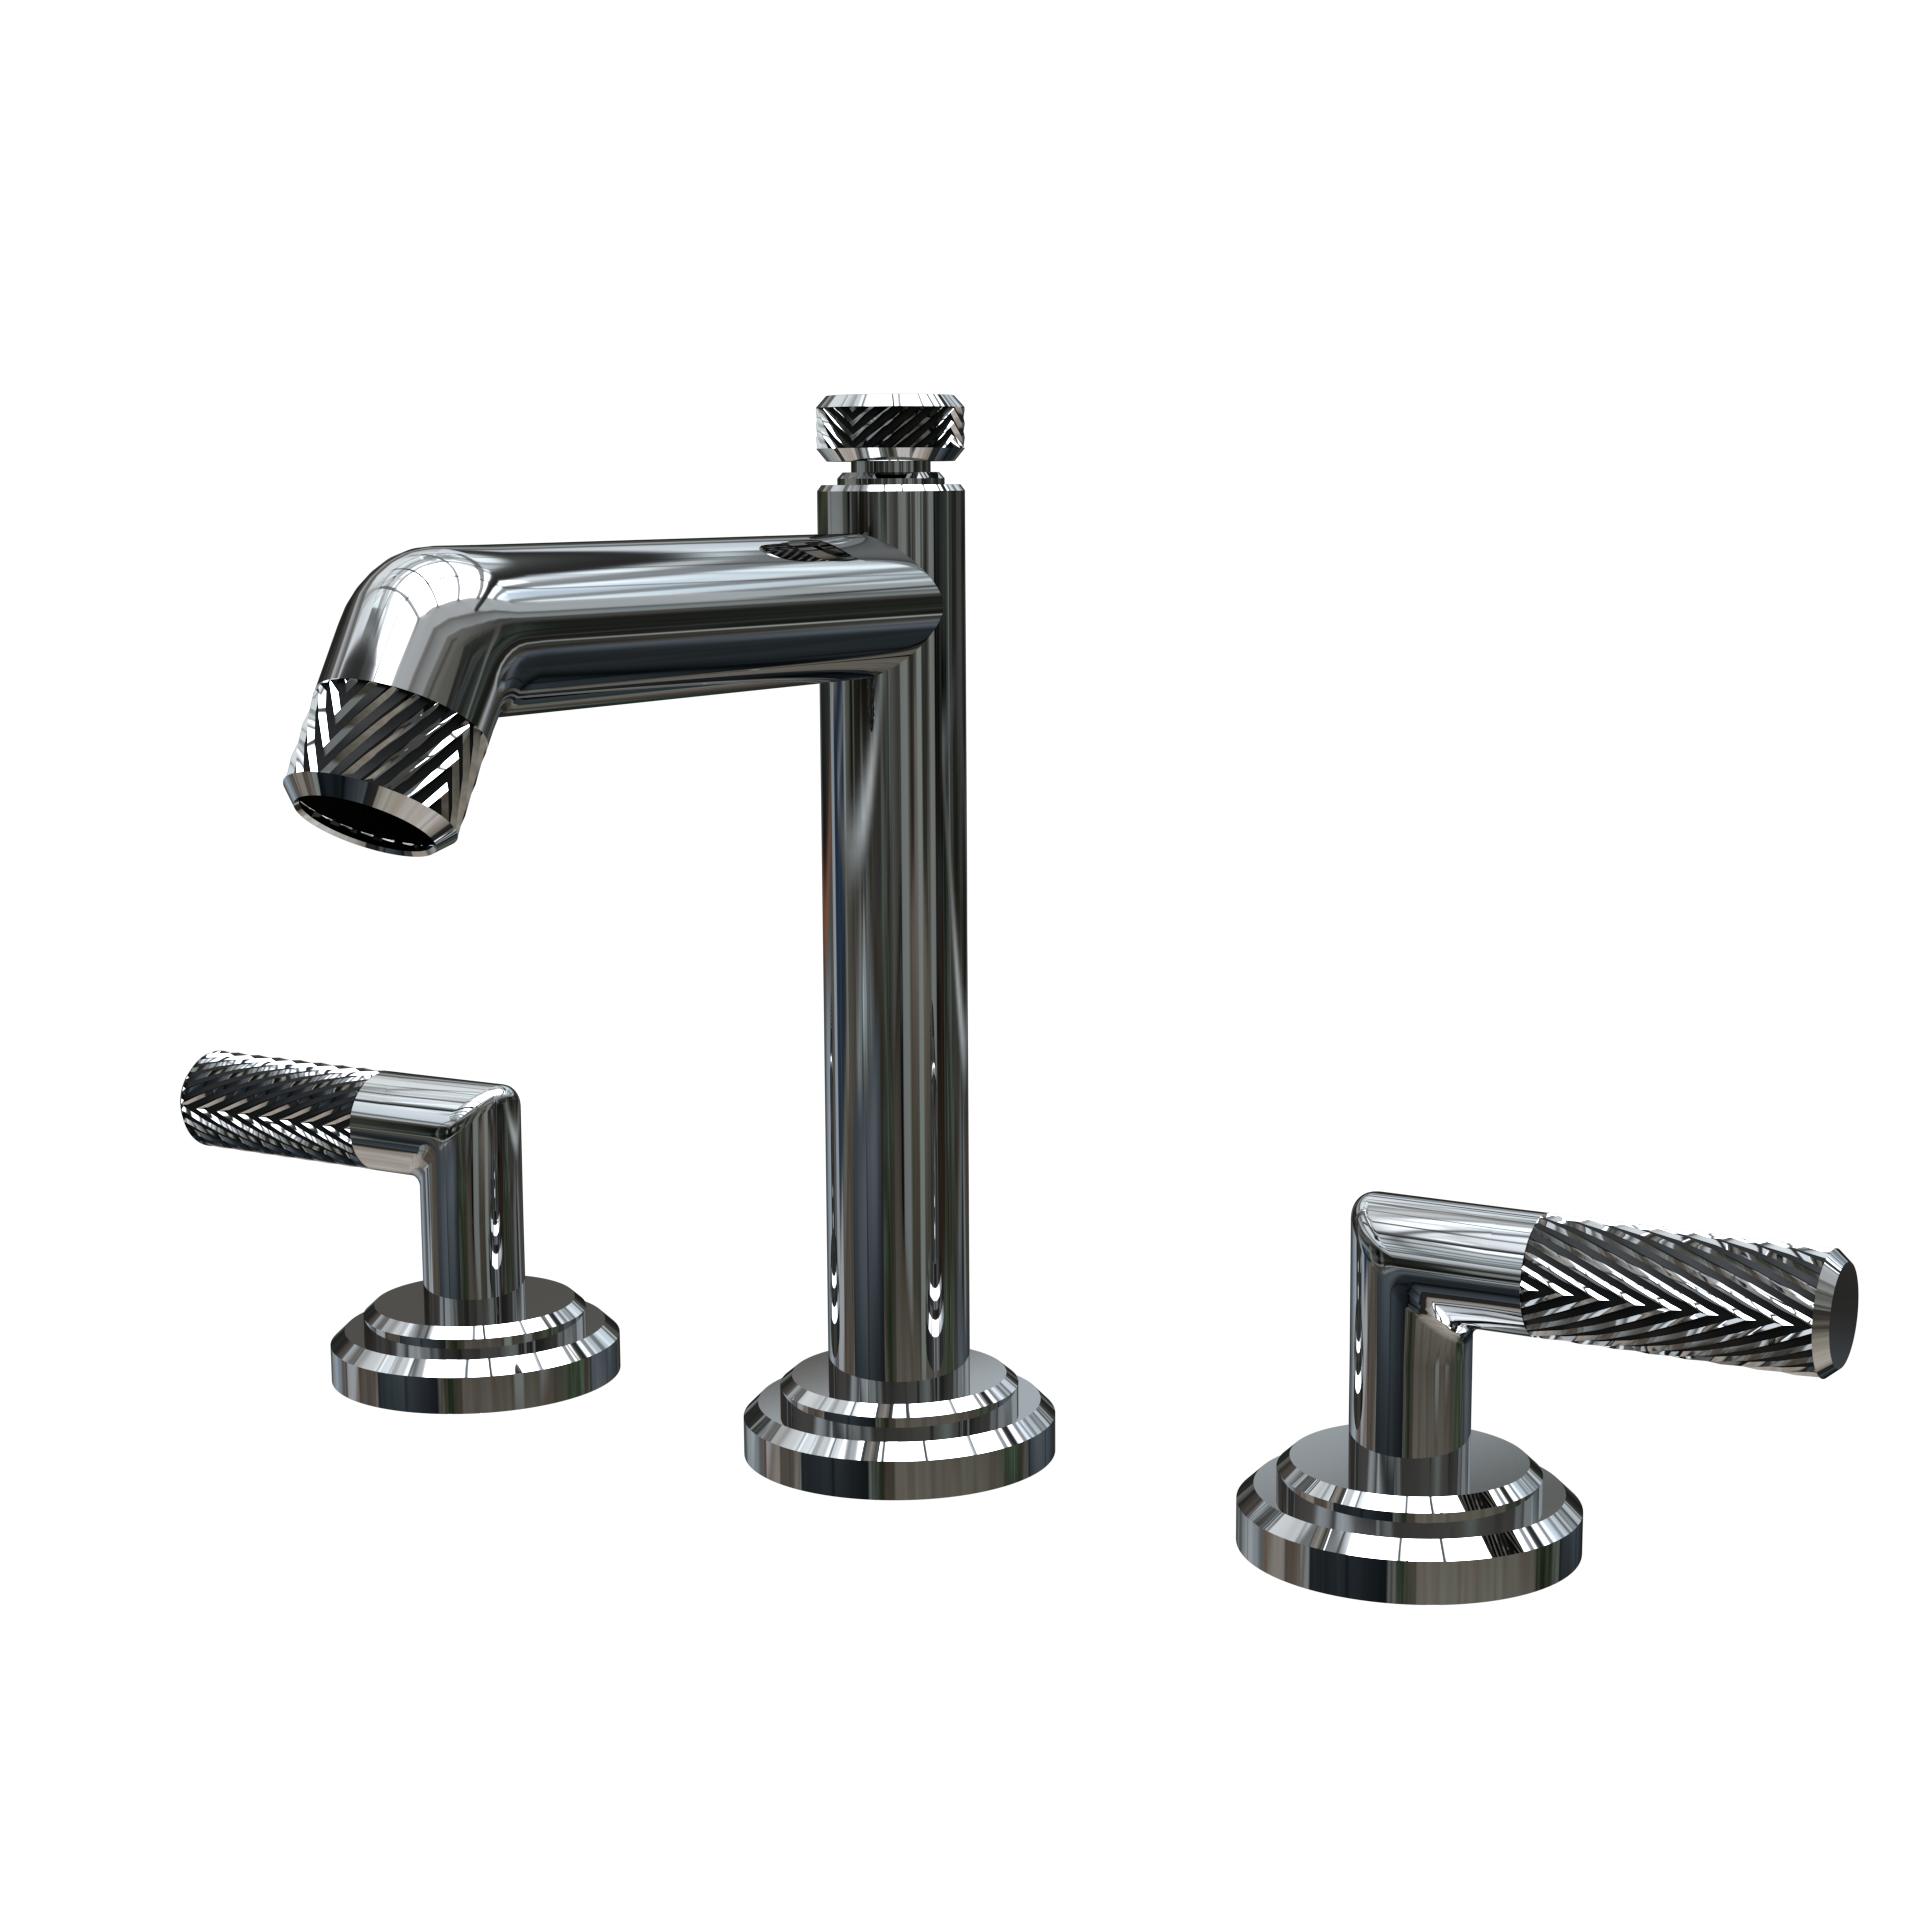 Bathroom Faucet AI 01 Preview.png